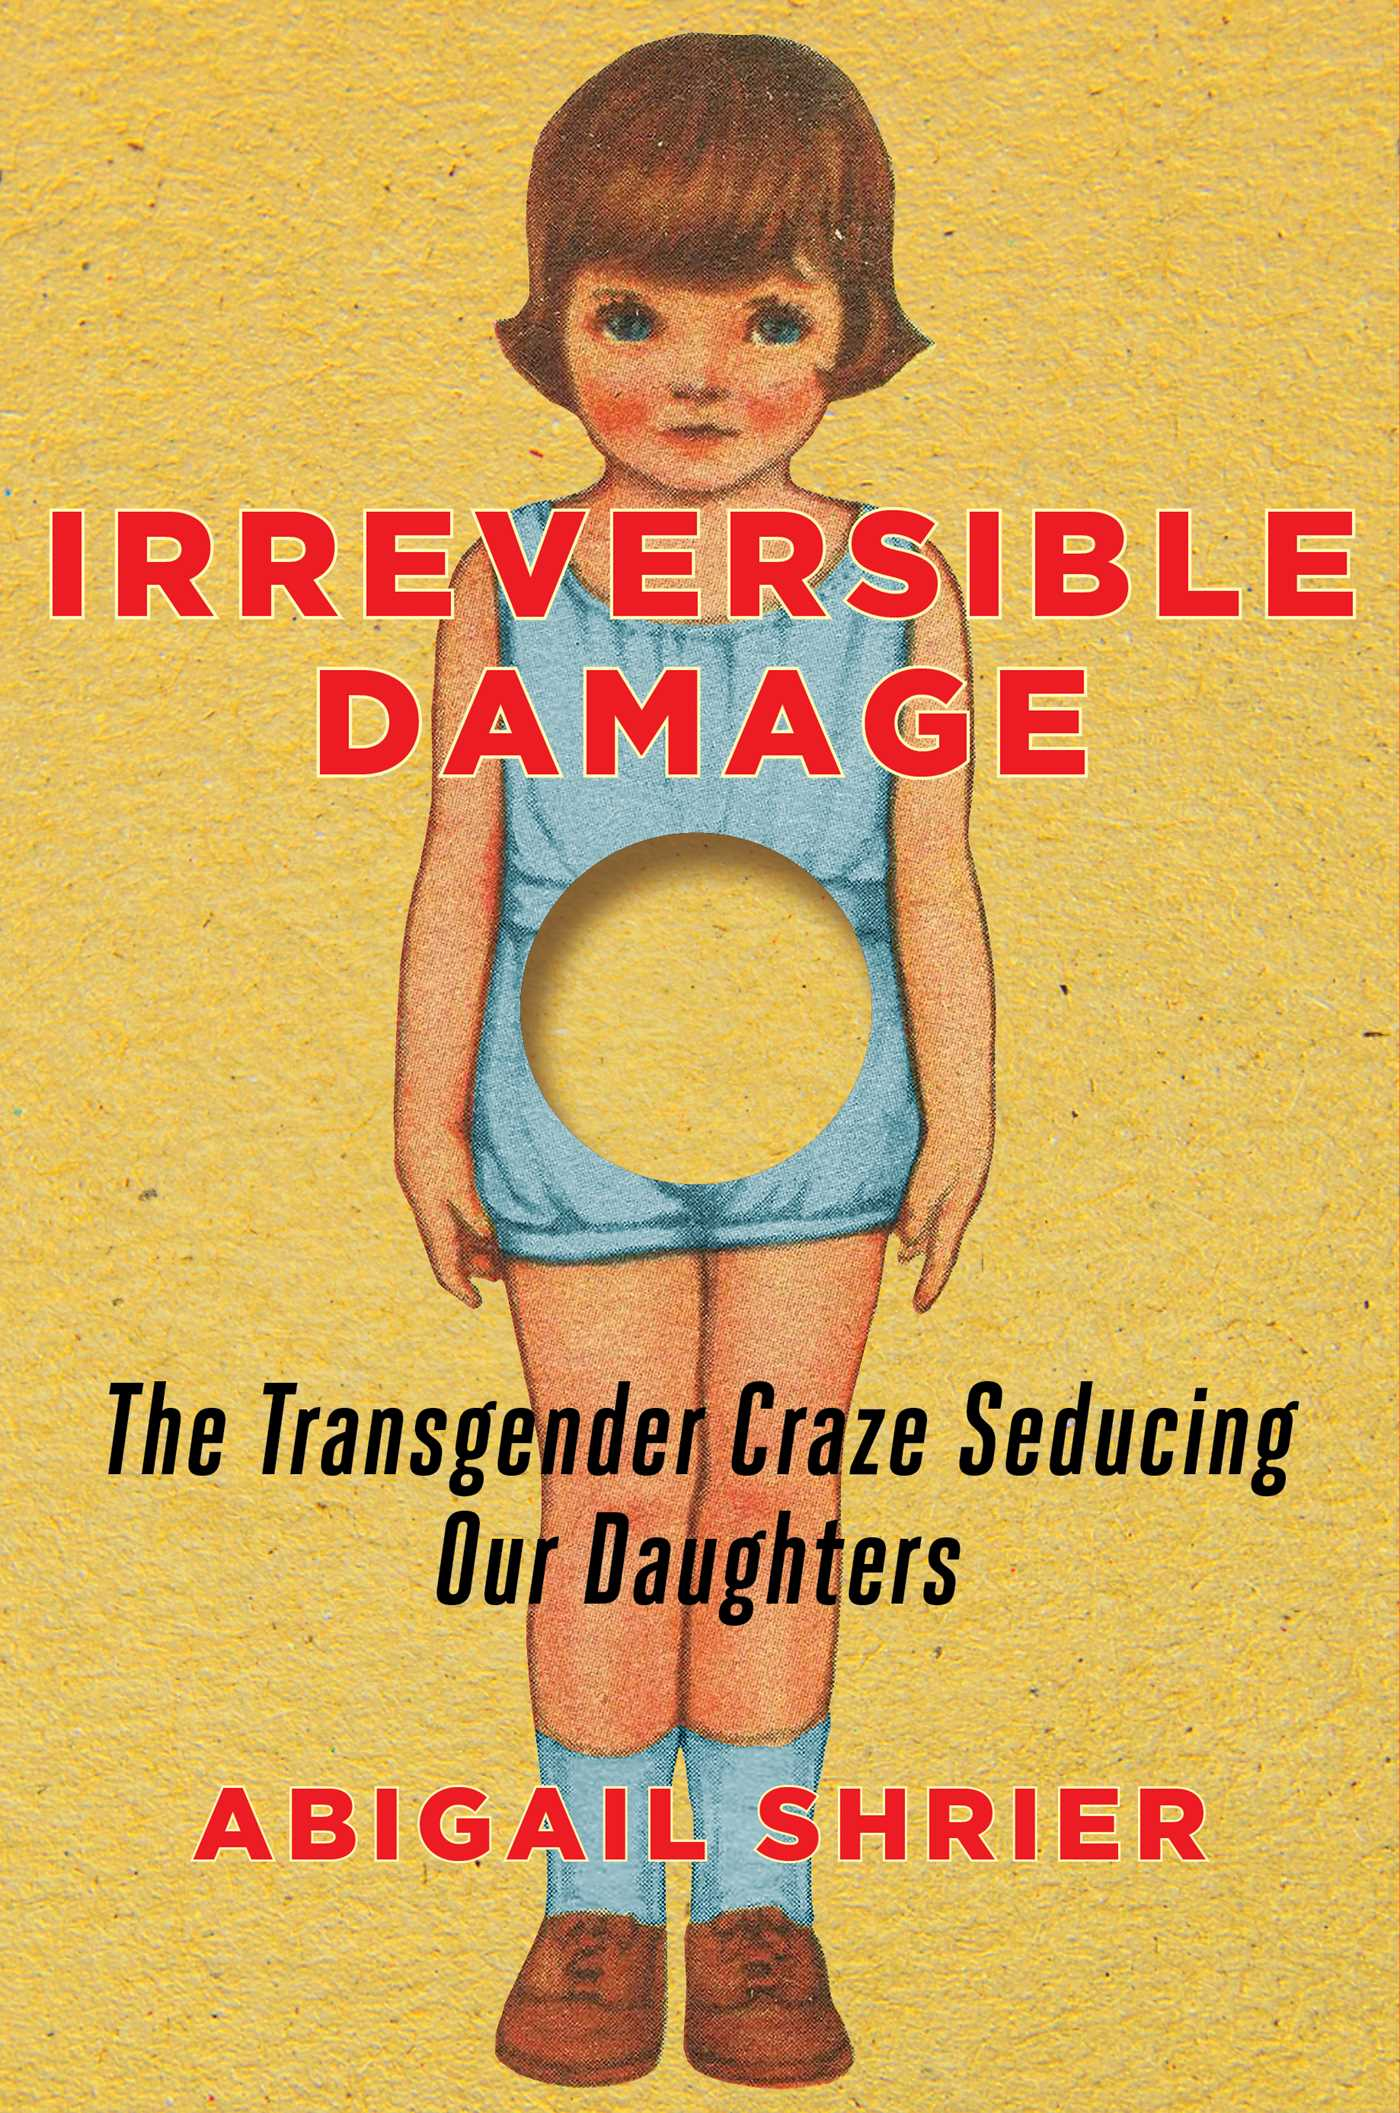 Abigail Shrier - Irreversible Damage: The Transgender Craze Seducing Our Daughters